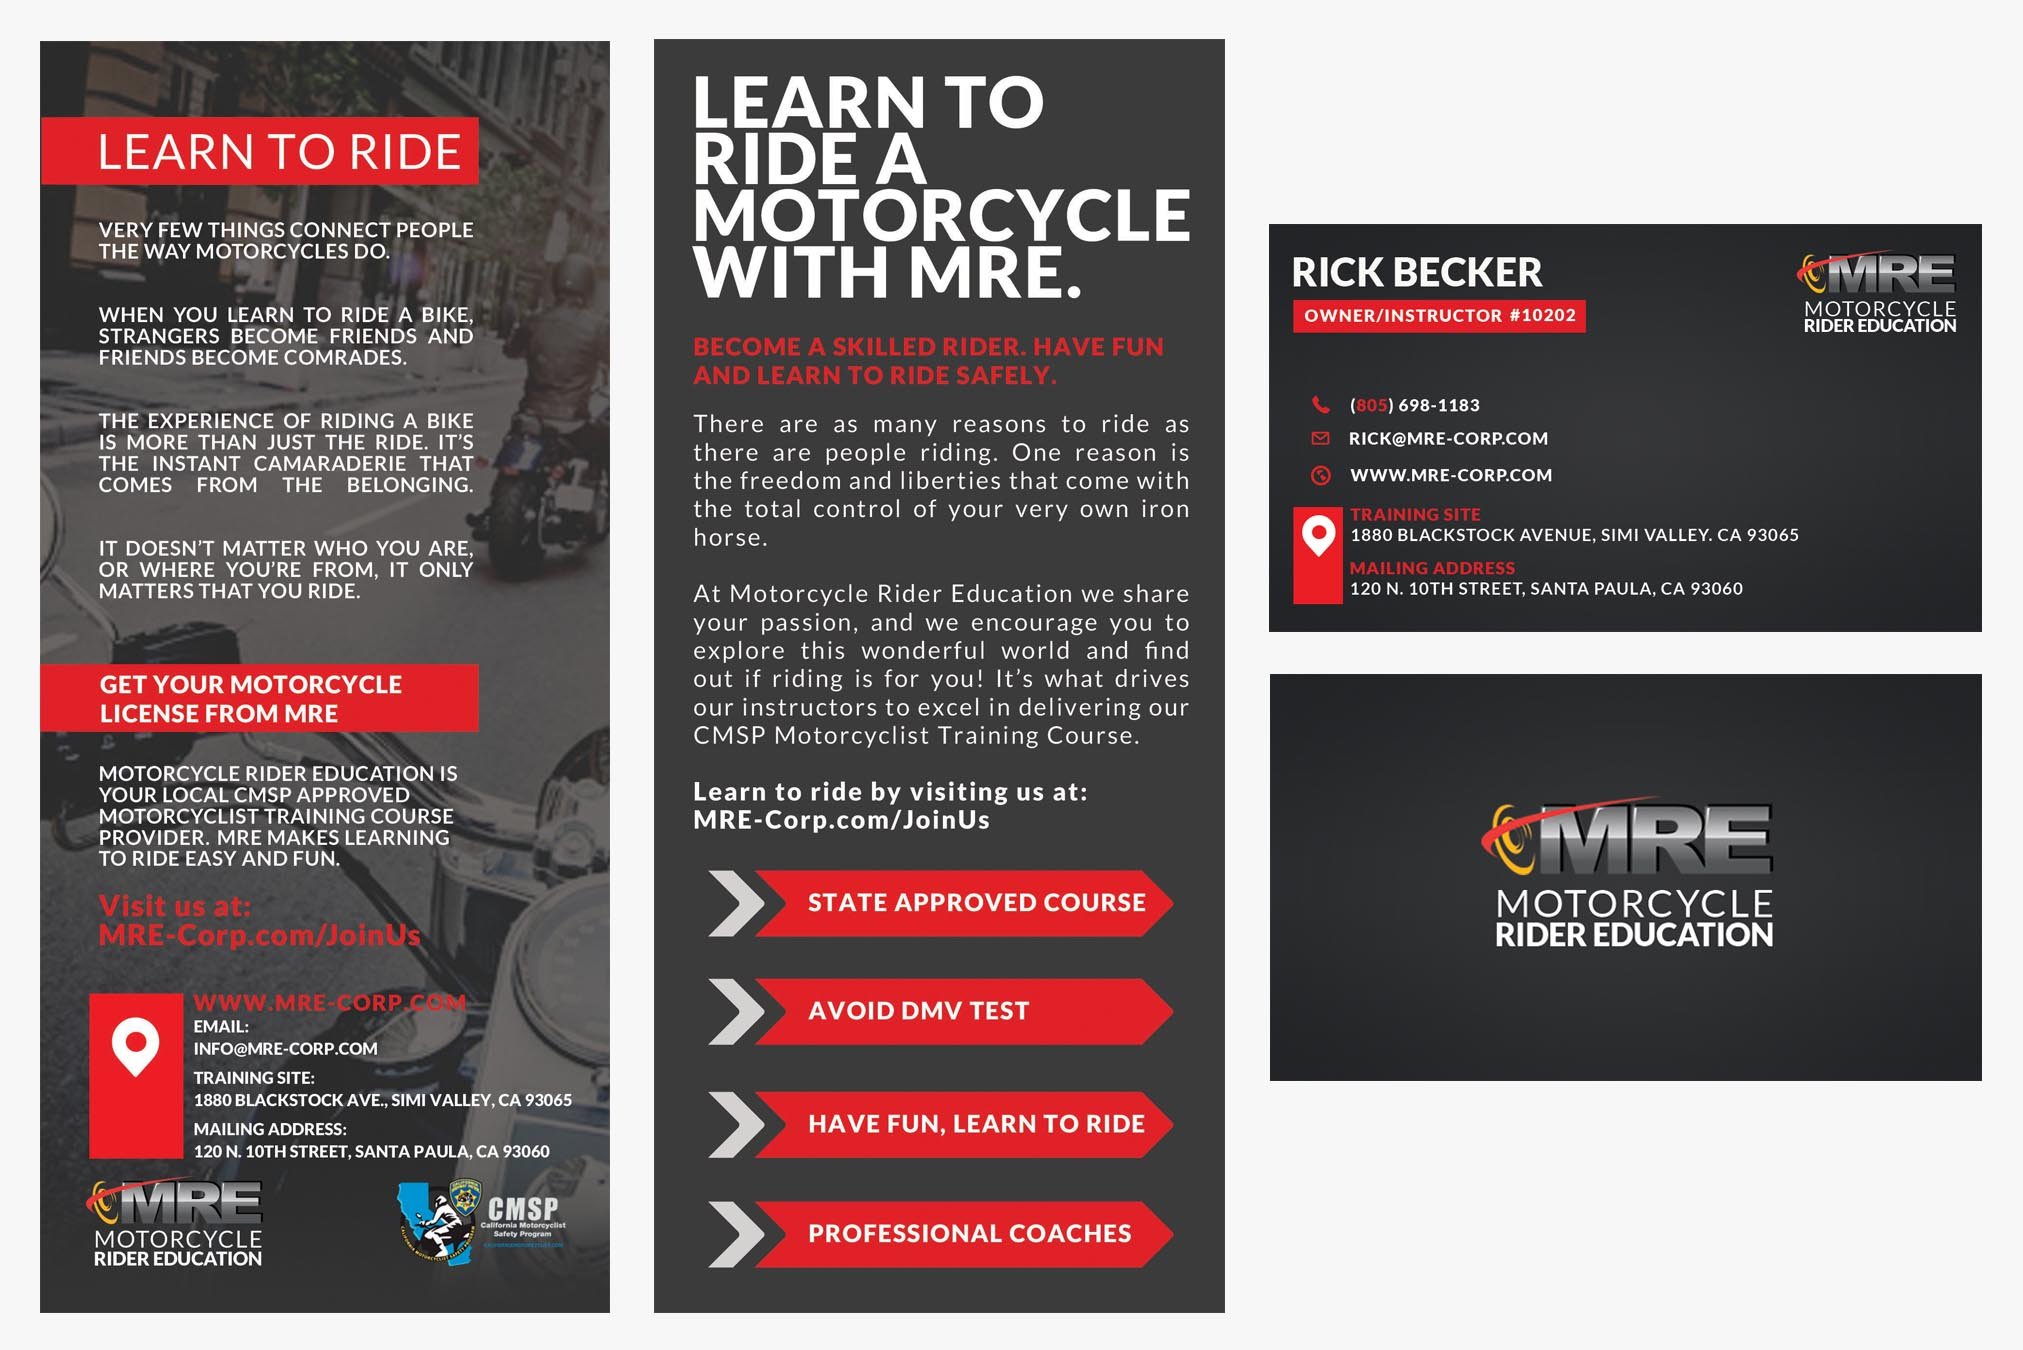 Motorcycle Rider Education Flyer Business Cards Michelle Dumas